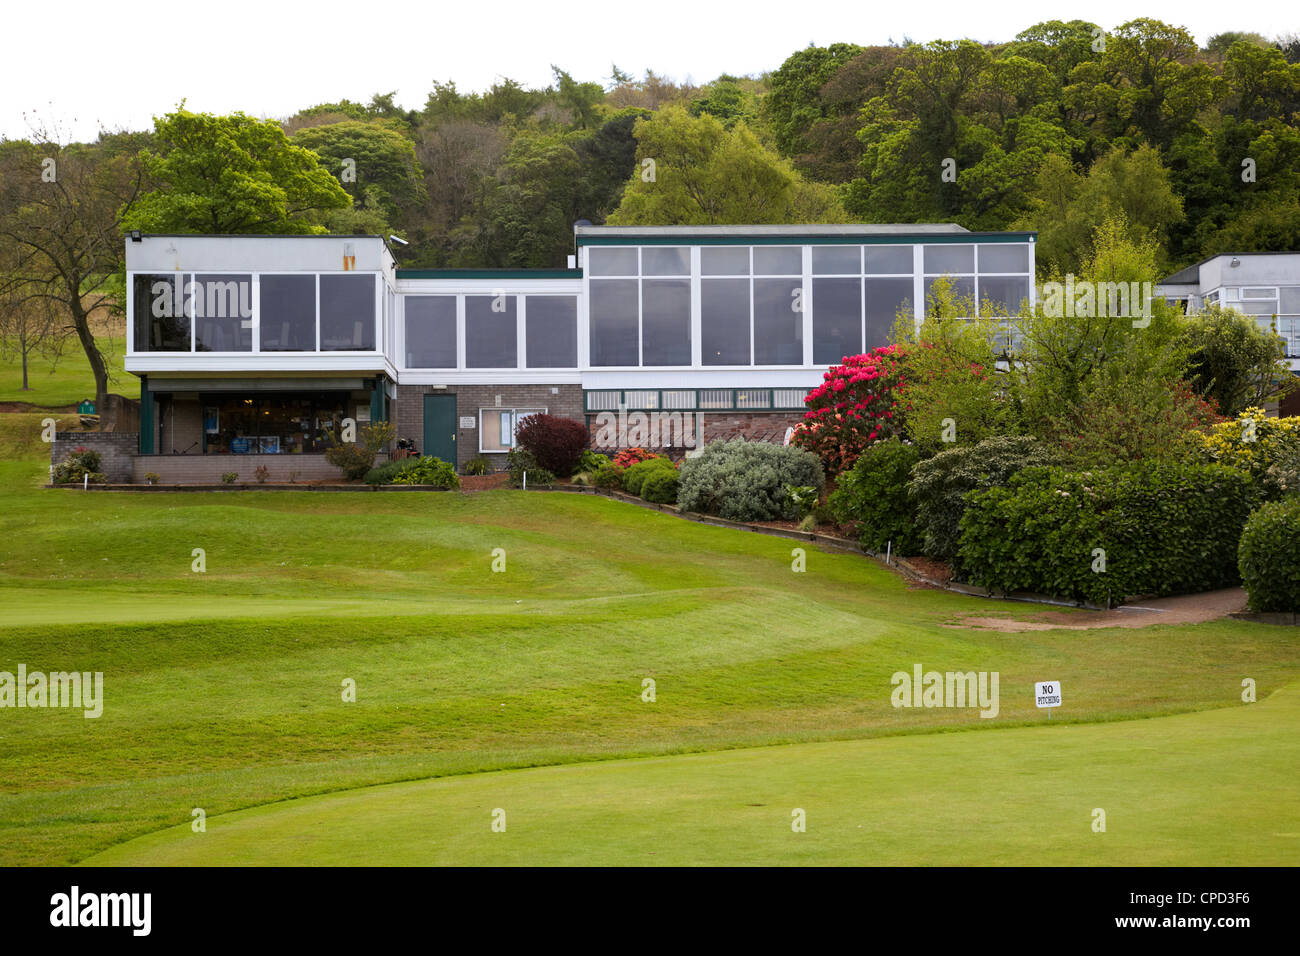 clubhouse at Holywood Golf Club home to Rory McIlroy County Down Northern Ireland uk - Stock Image